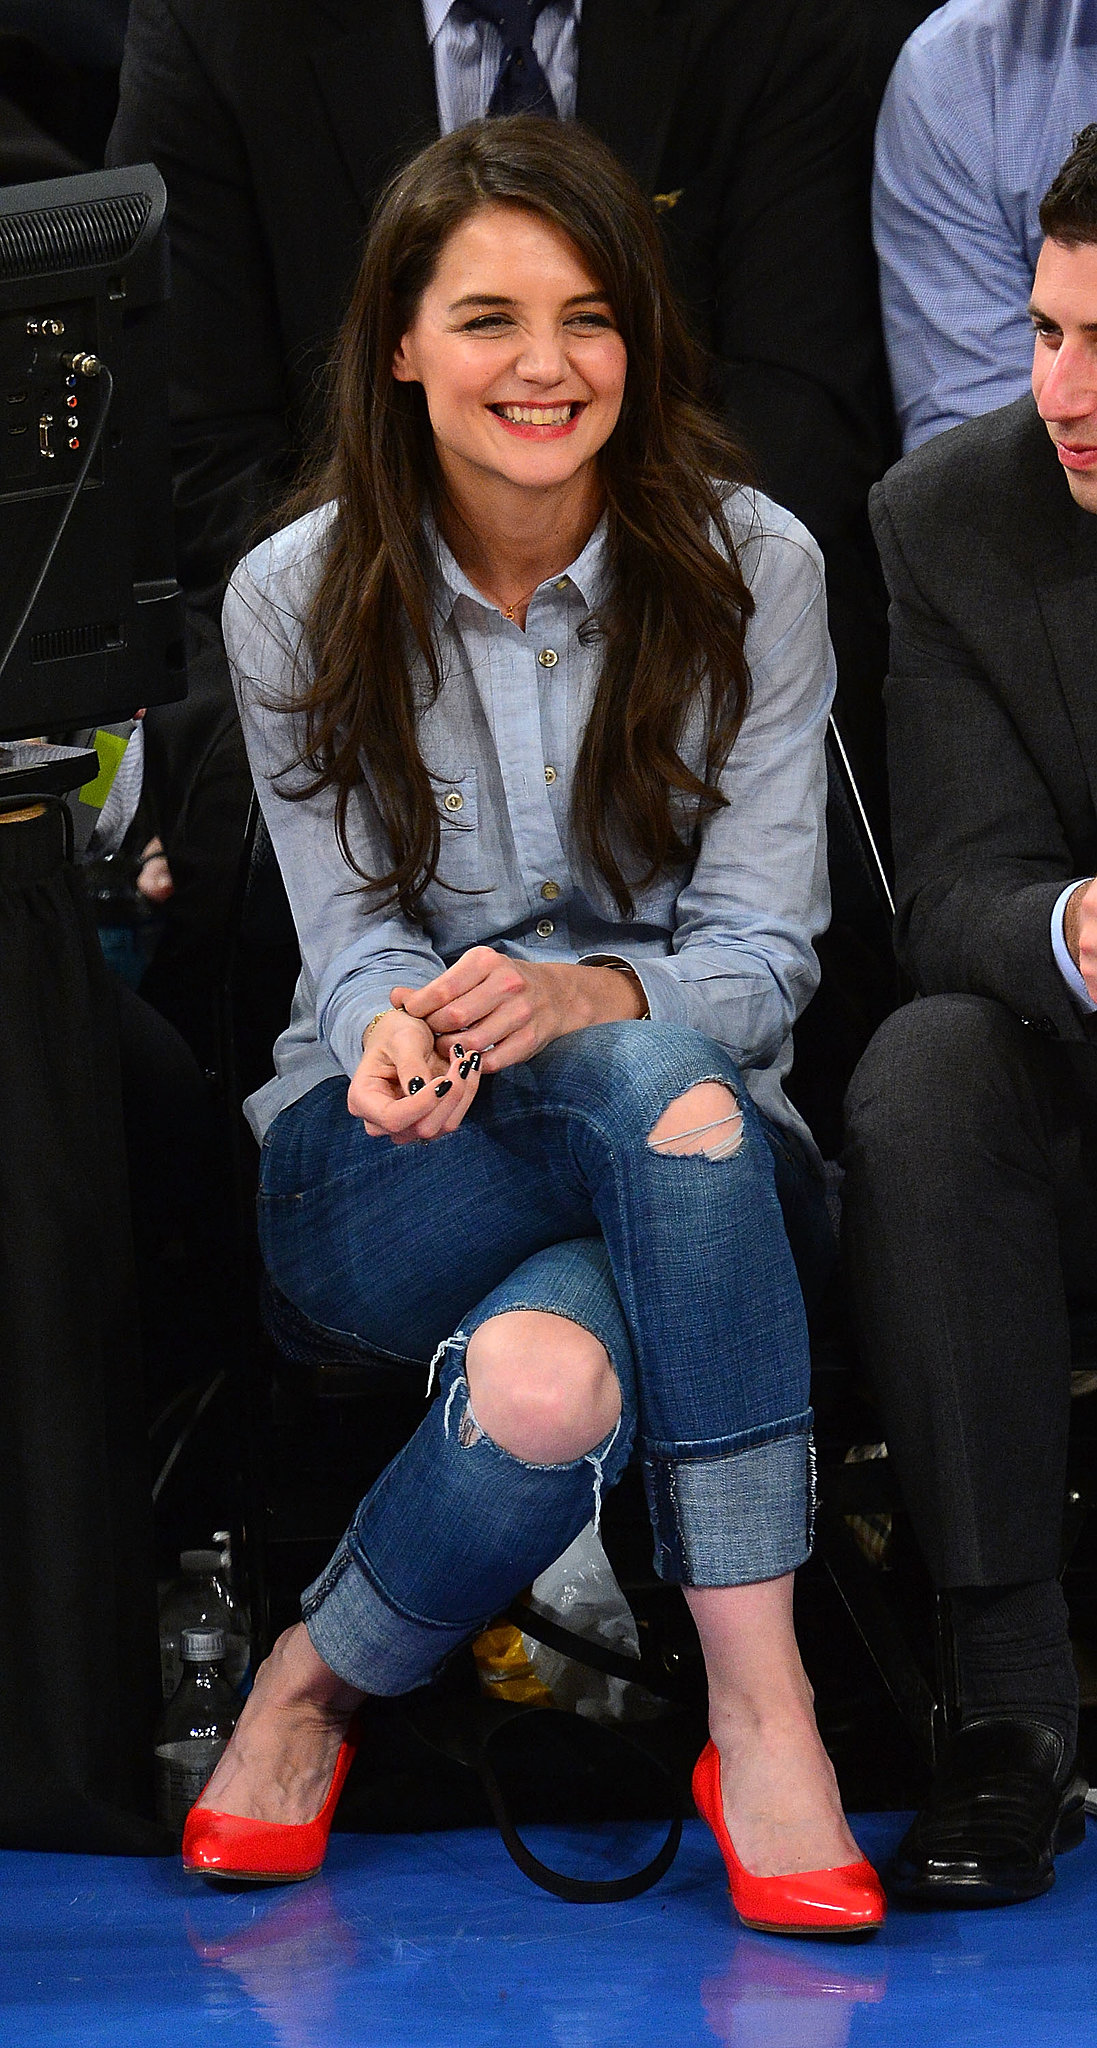 Katie Holmes's double-denim outfit and bright pumps were a fun, fresh addition to the front row at a February NY Knicks game.